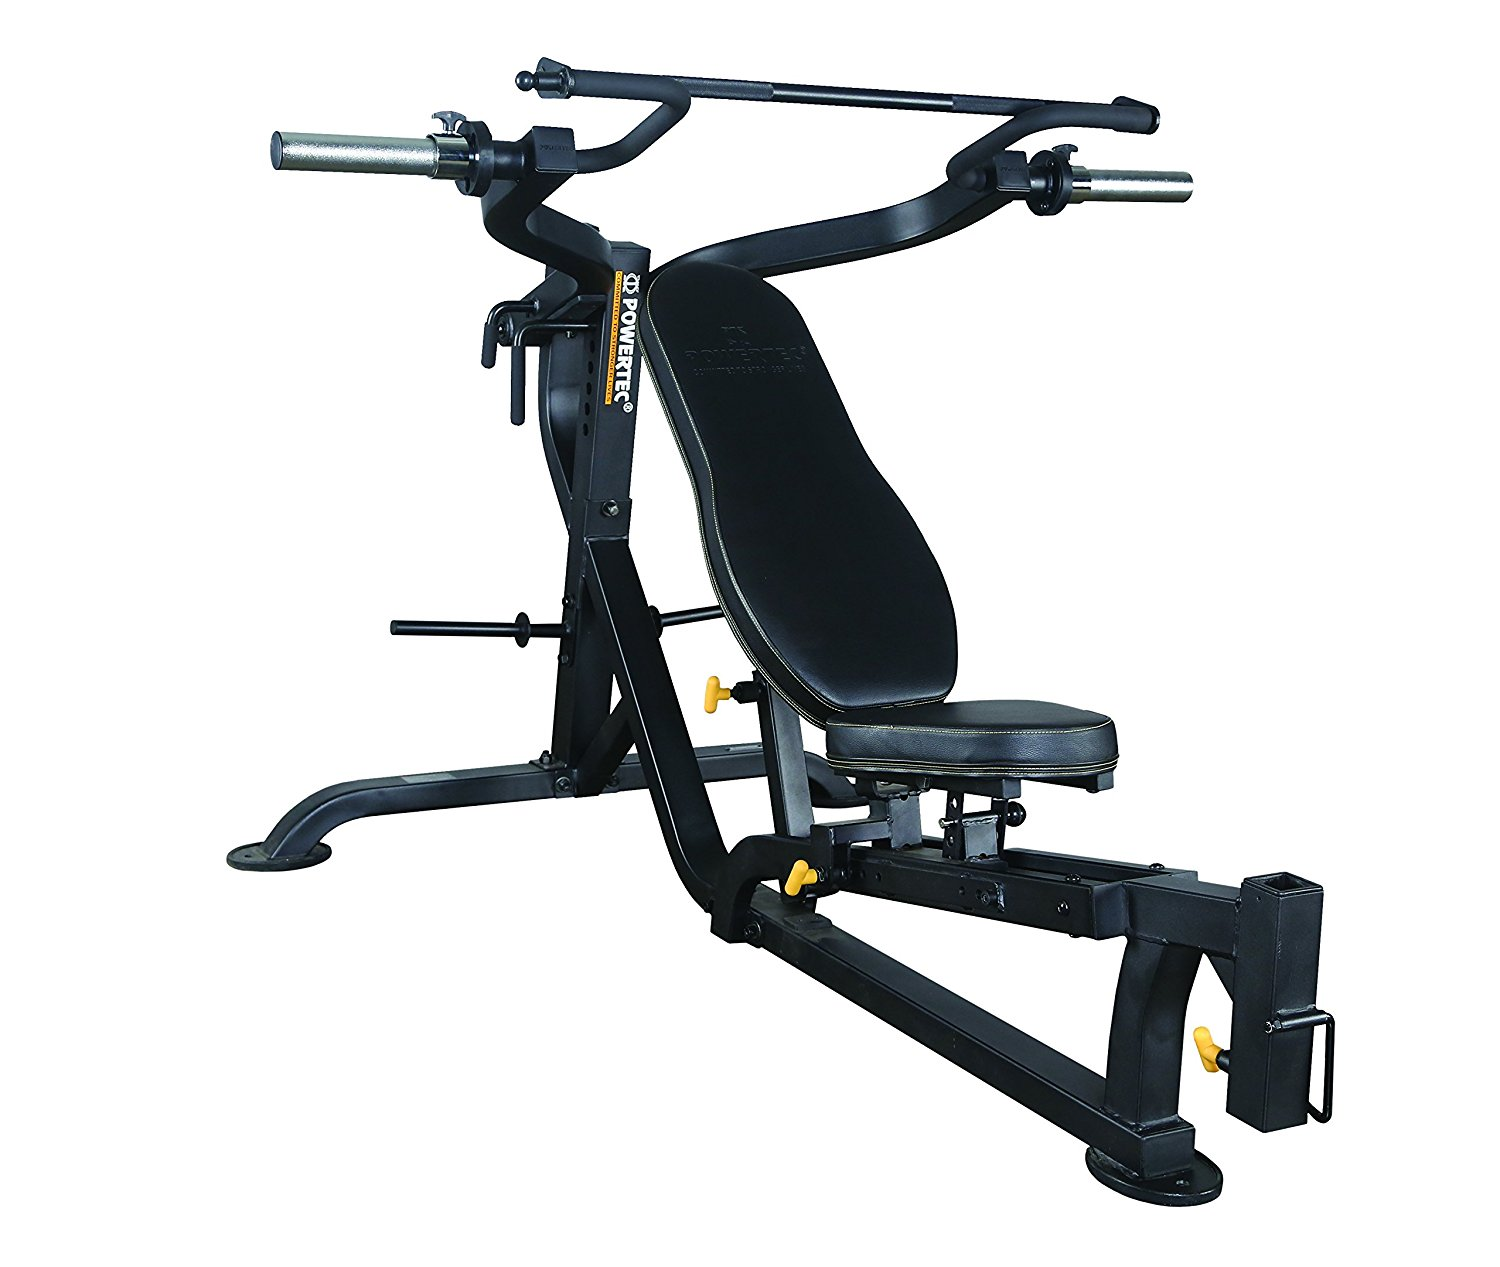 Superb Get Quotations · Powertec Fitness Multi Press Work Bench, Black